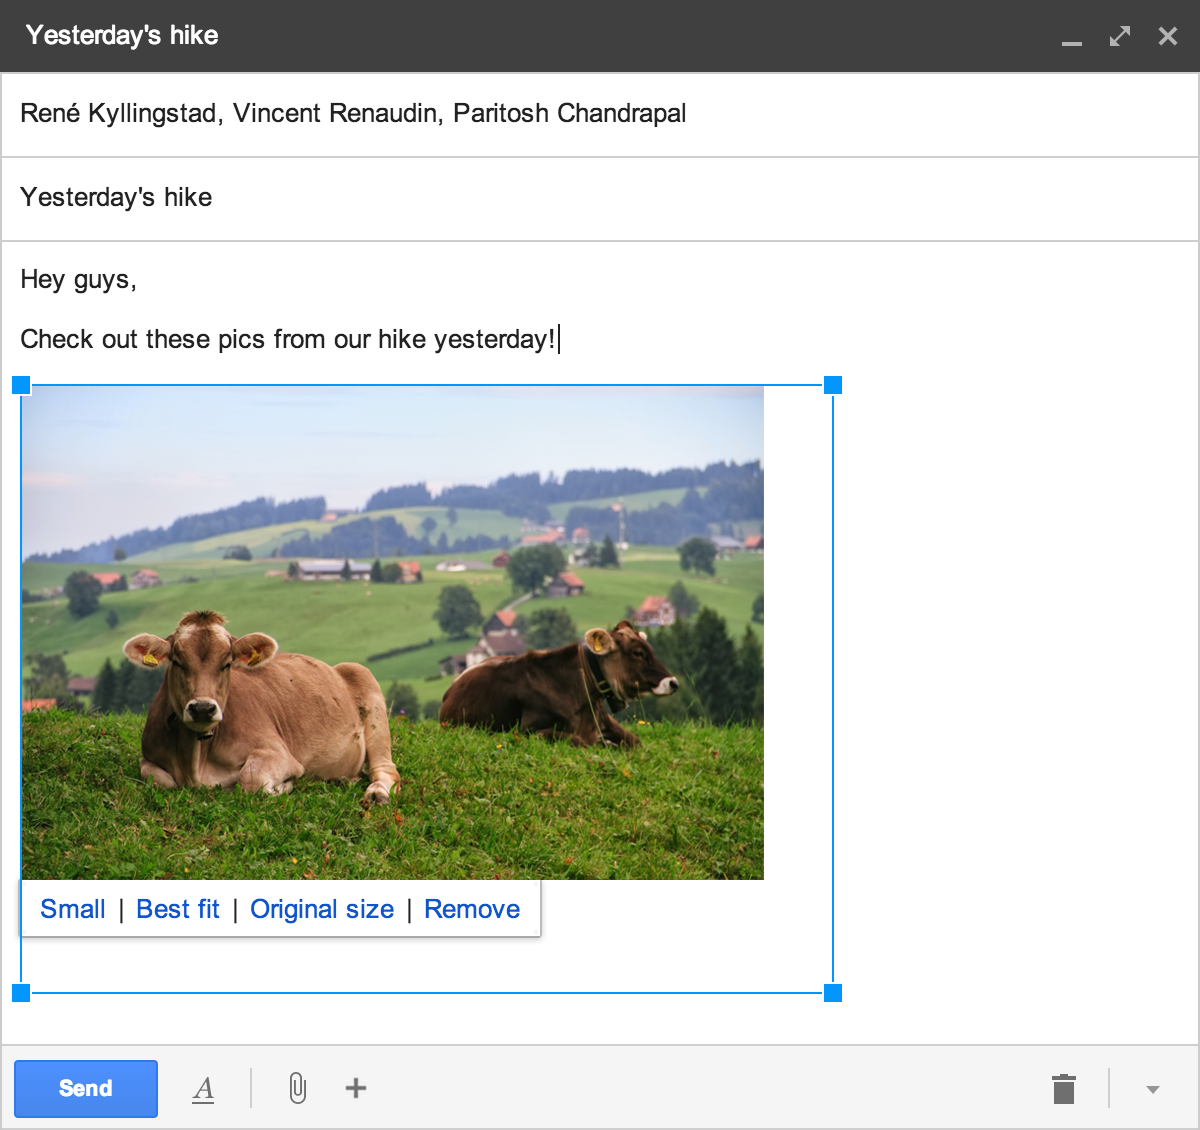 Image cropping in Gmail